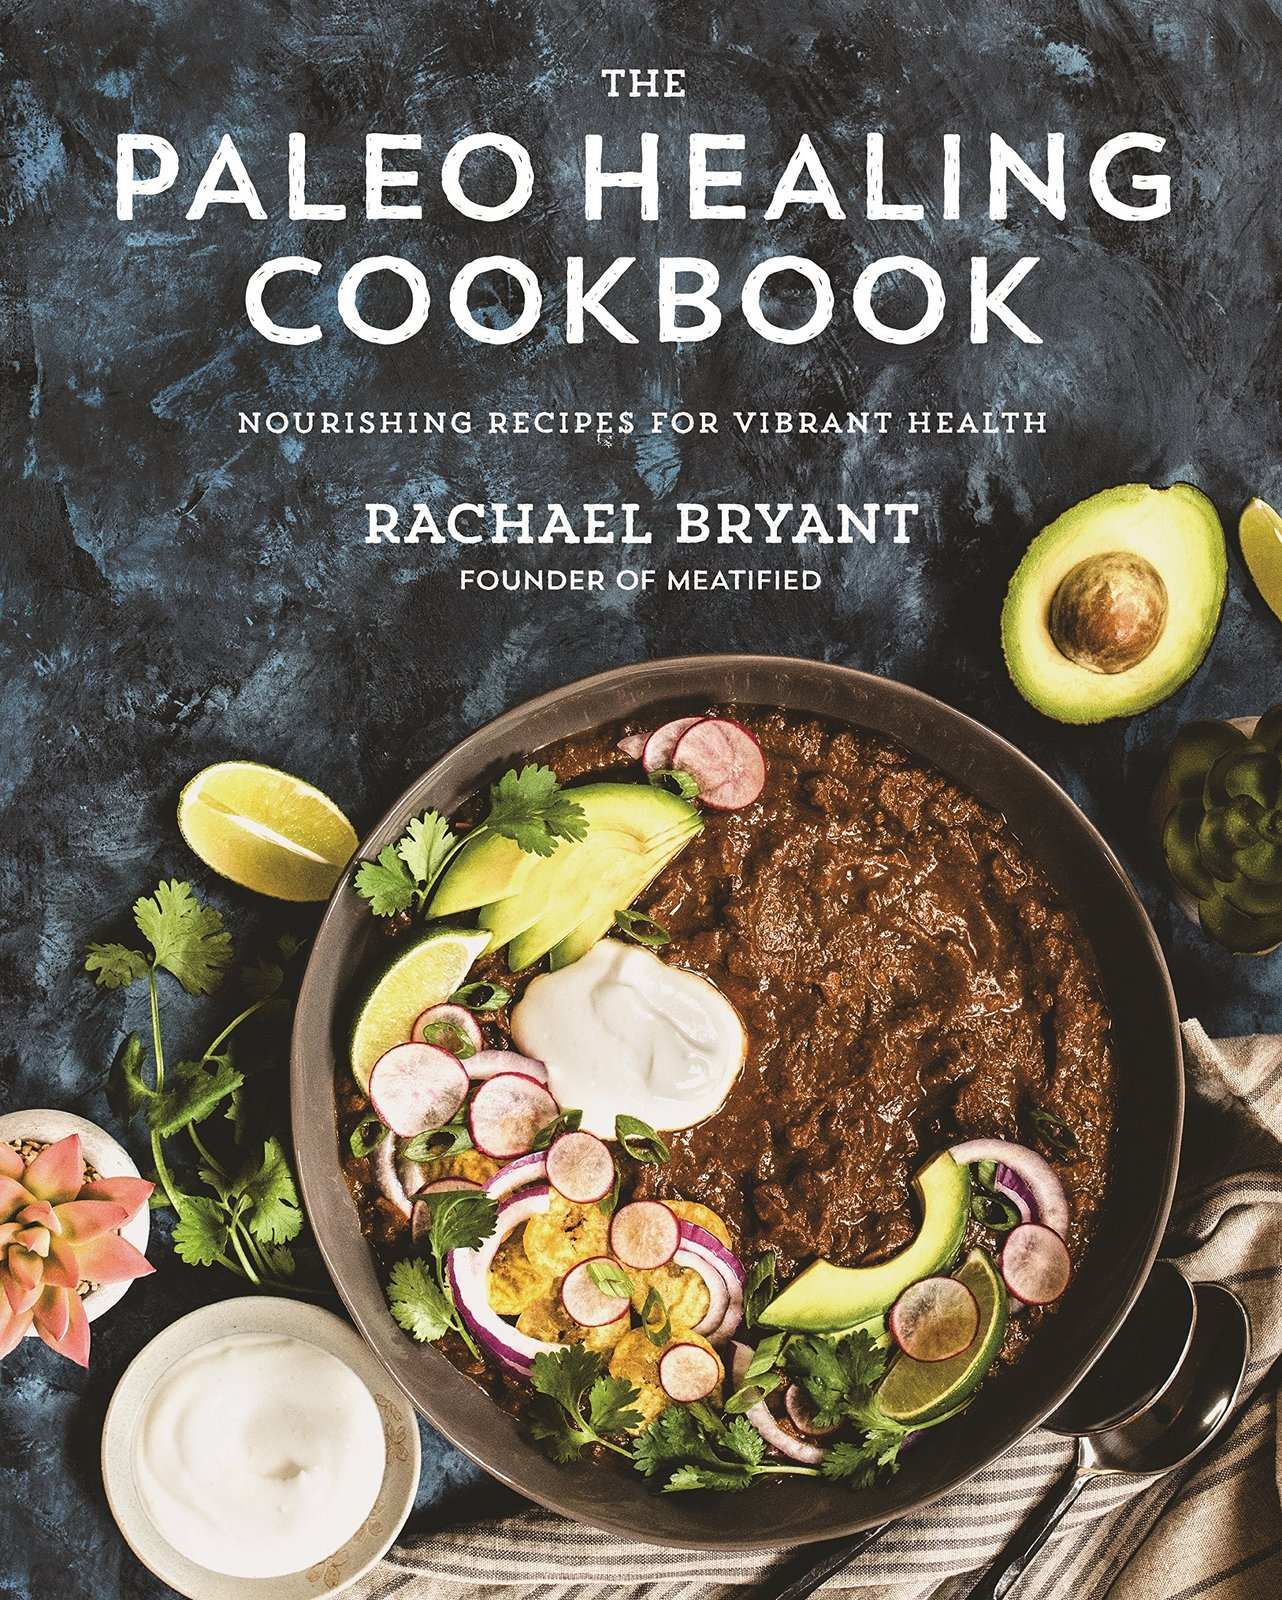 The Paleo Healing Cookbook Review & Sample Recipe | Phoenix Helix